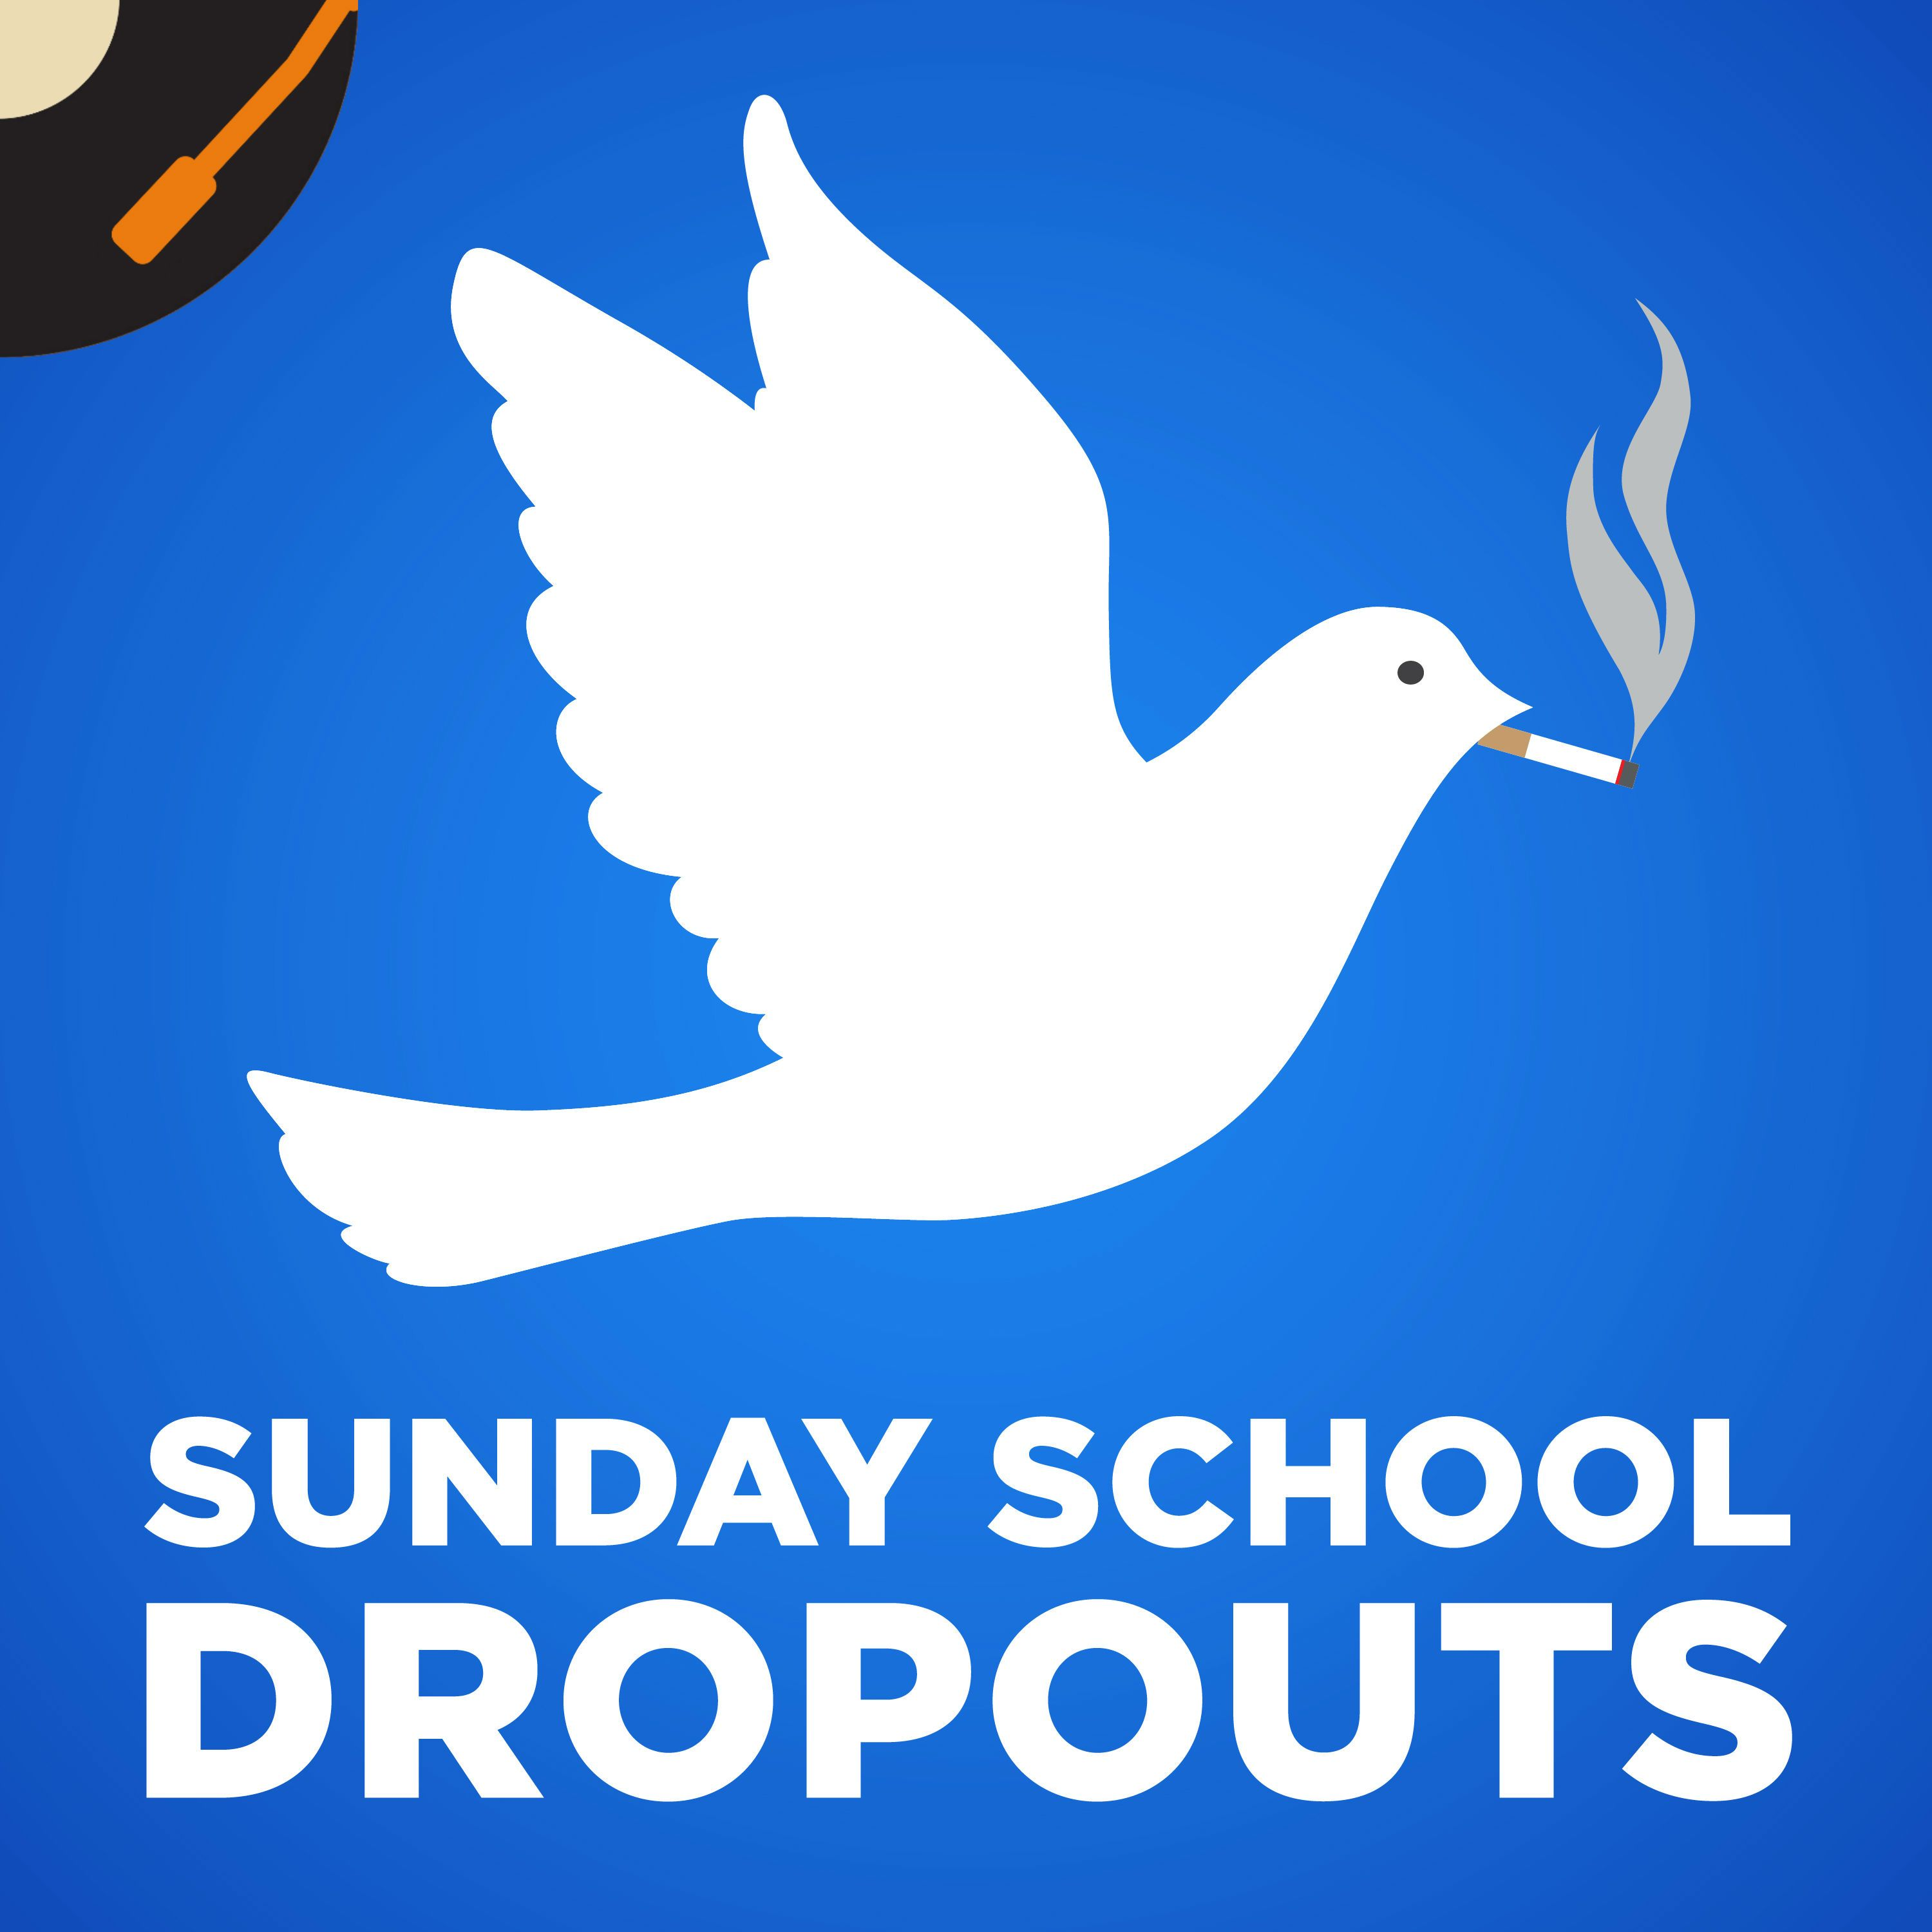 Sunday School Dropouts